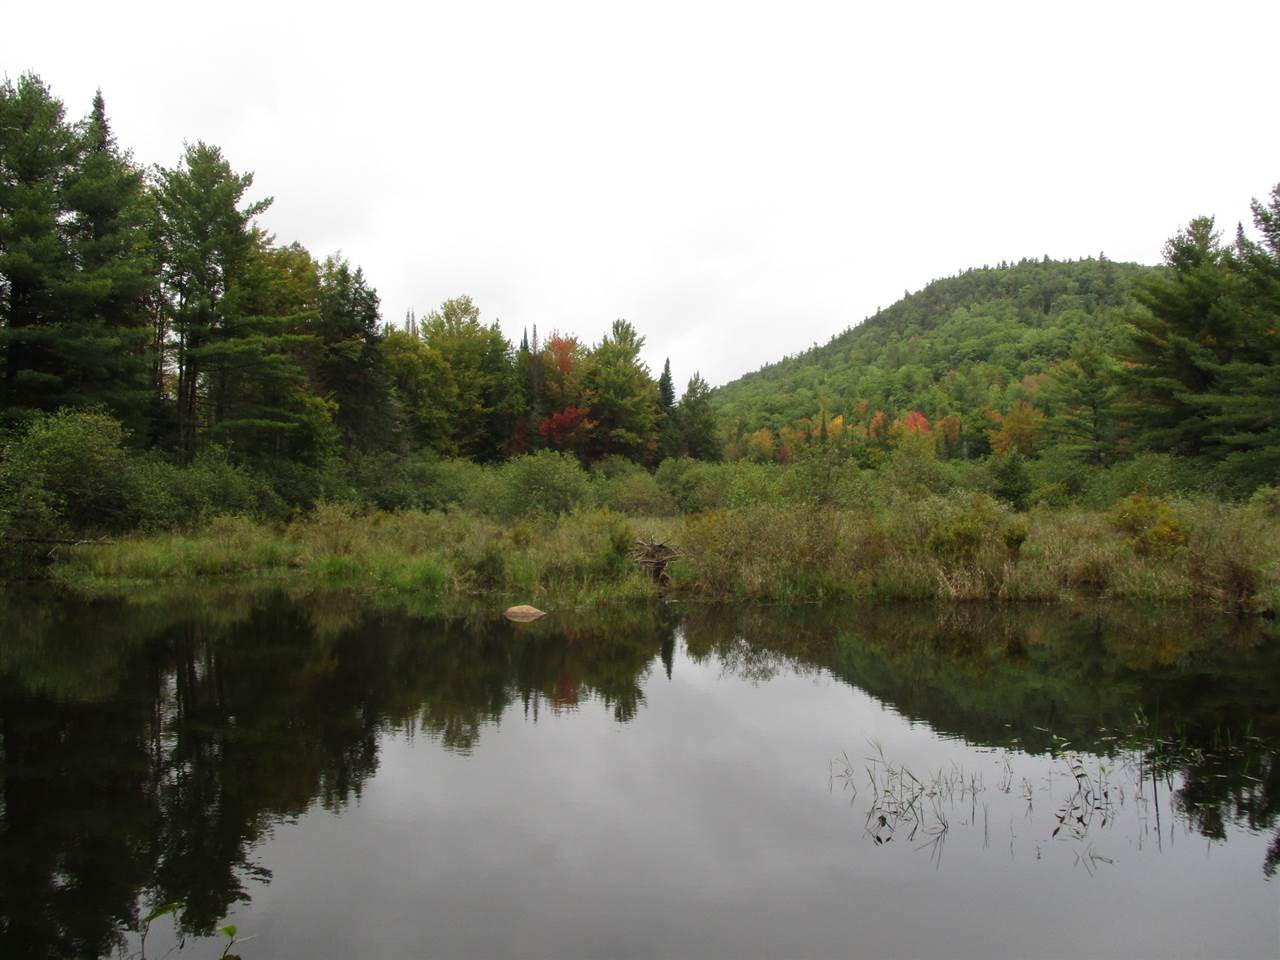 Keeseville image 16